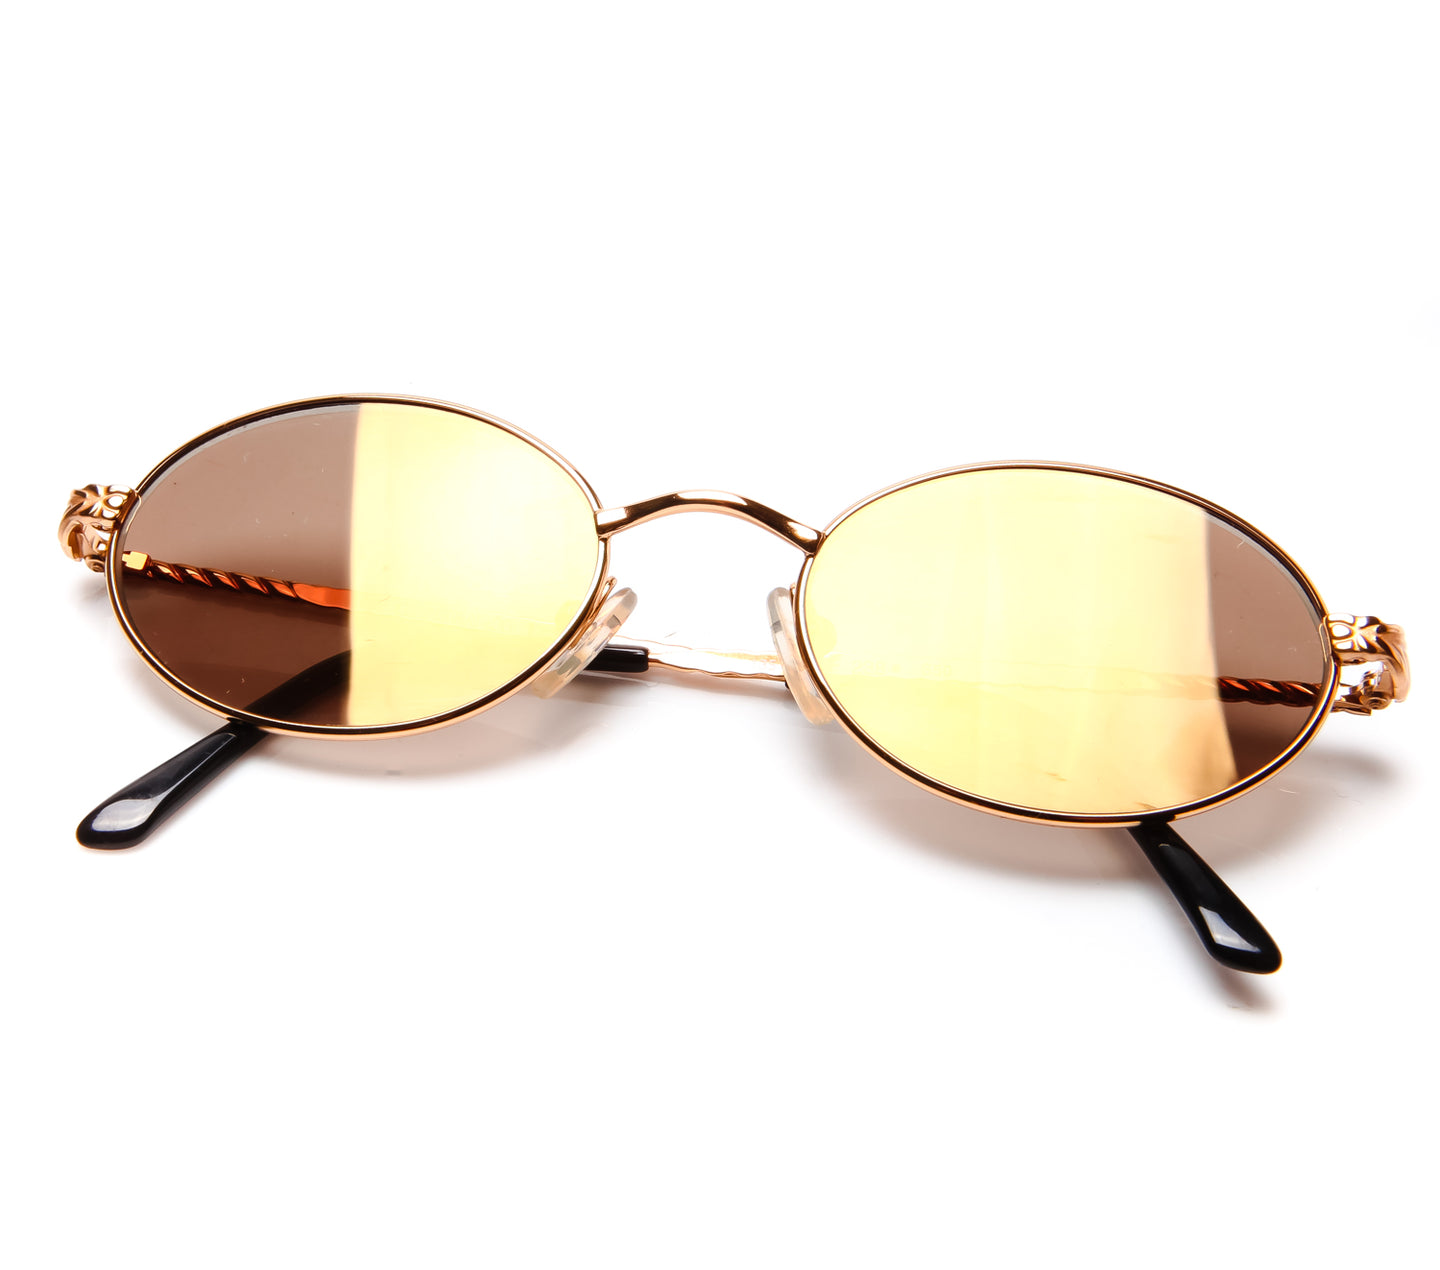 GianFranco Ferre 238 (Brown Flash Gold Flat Lens)